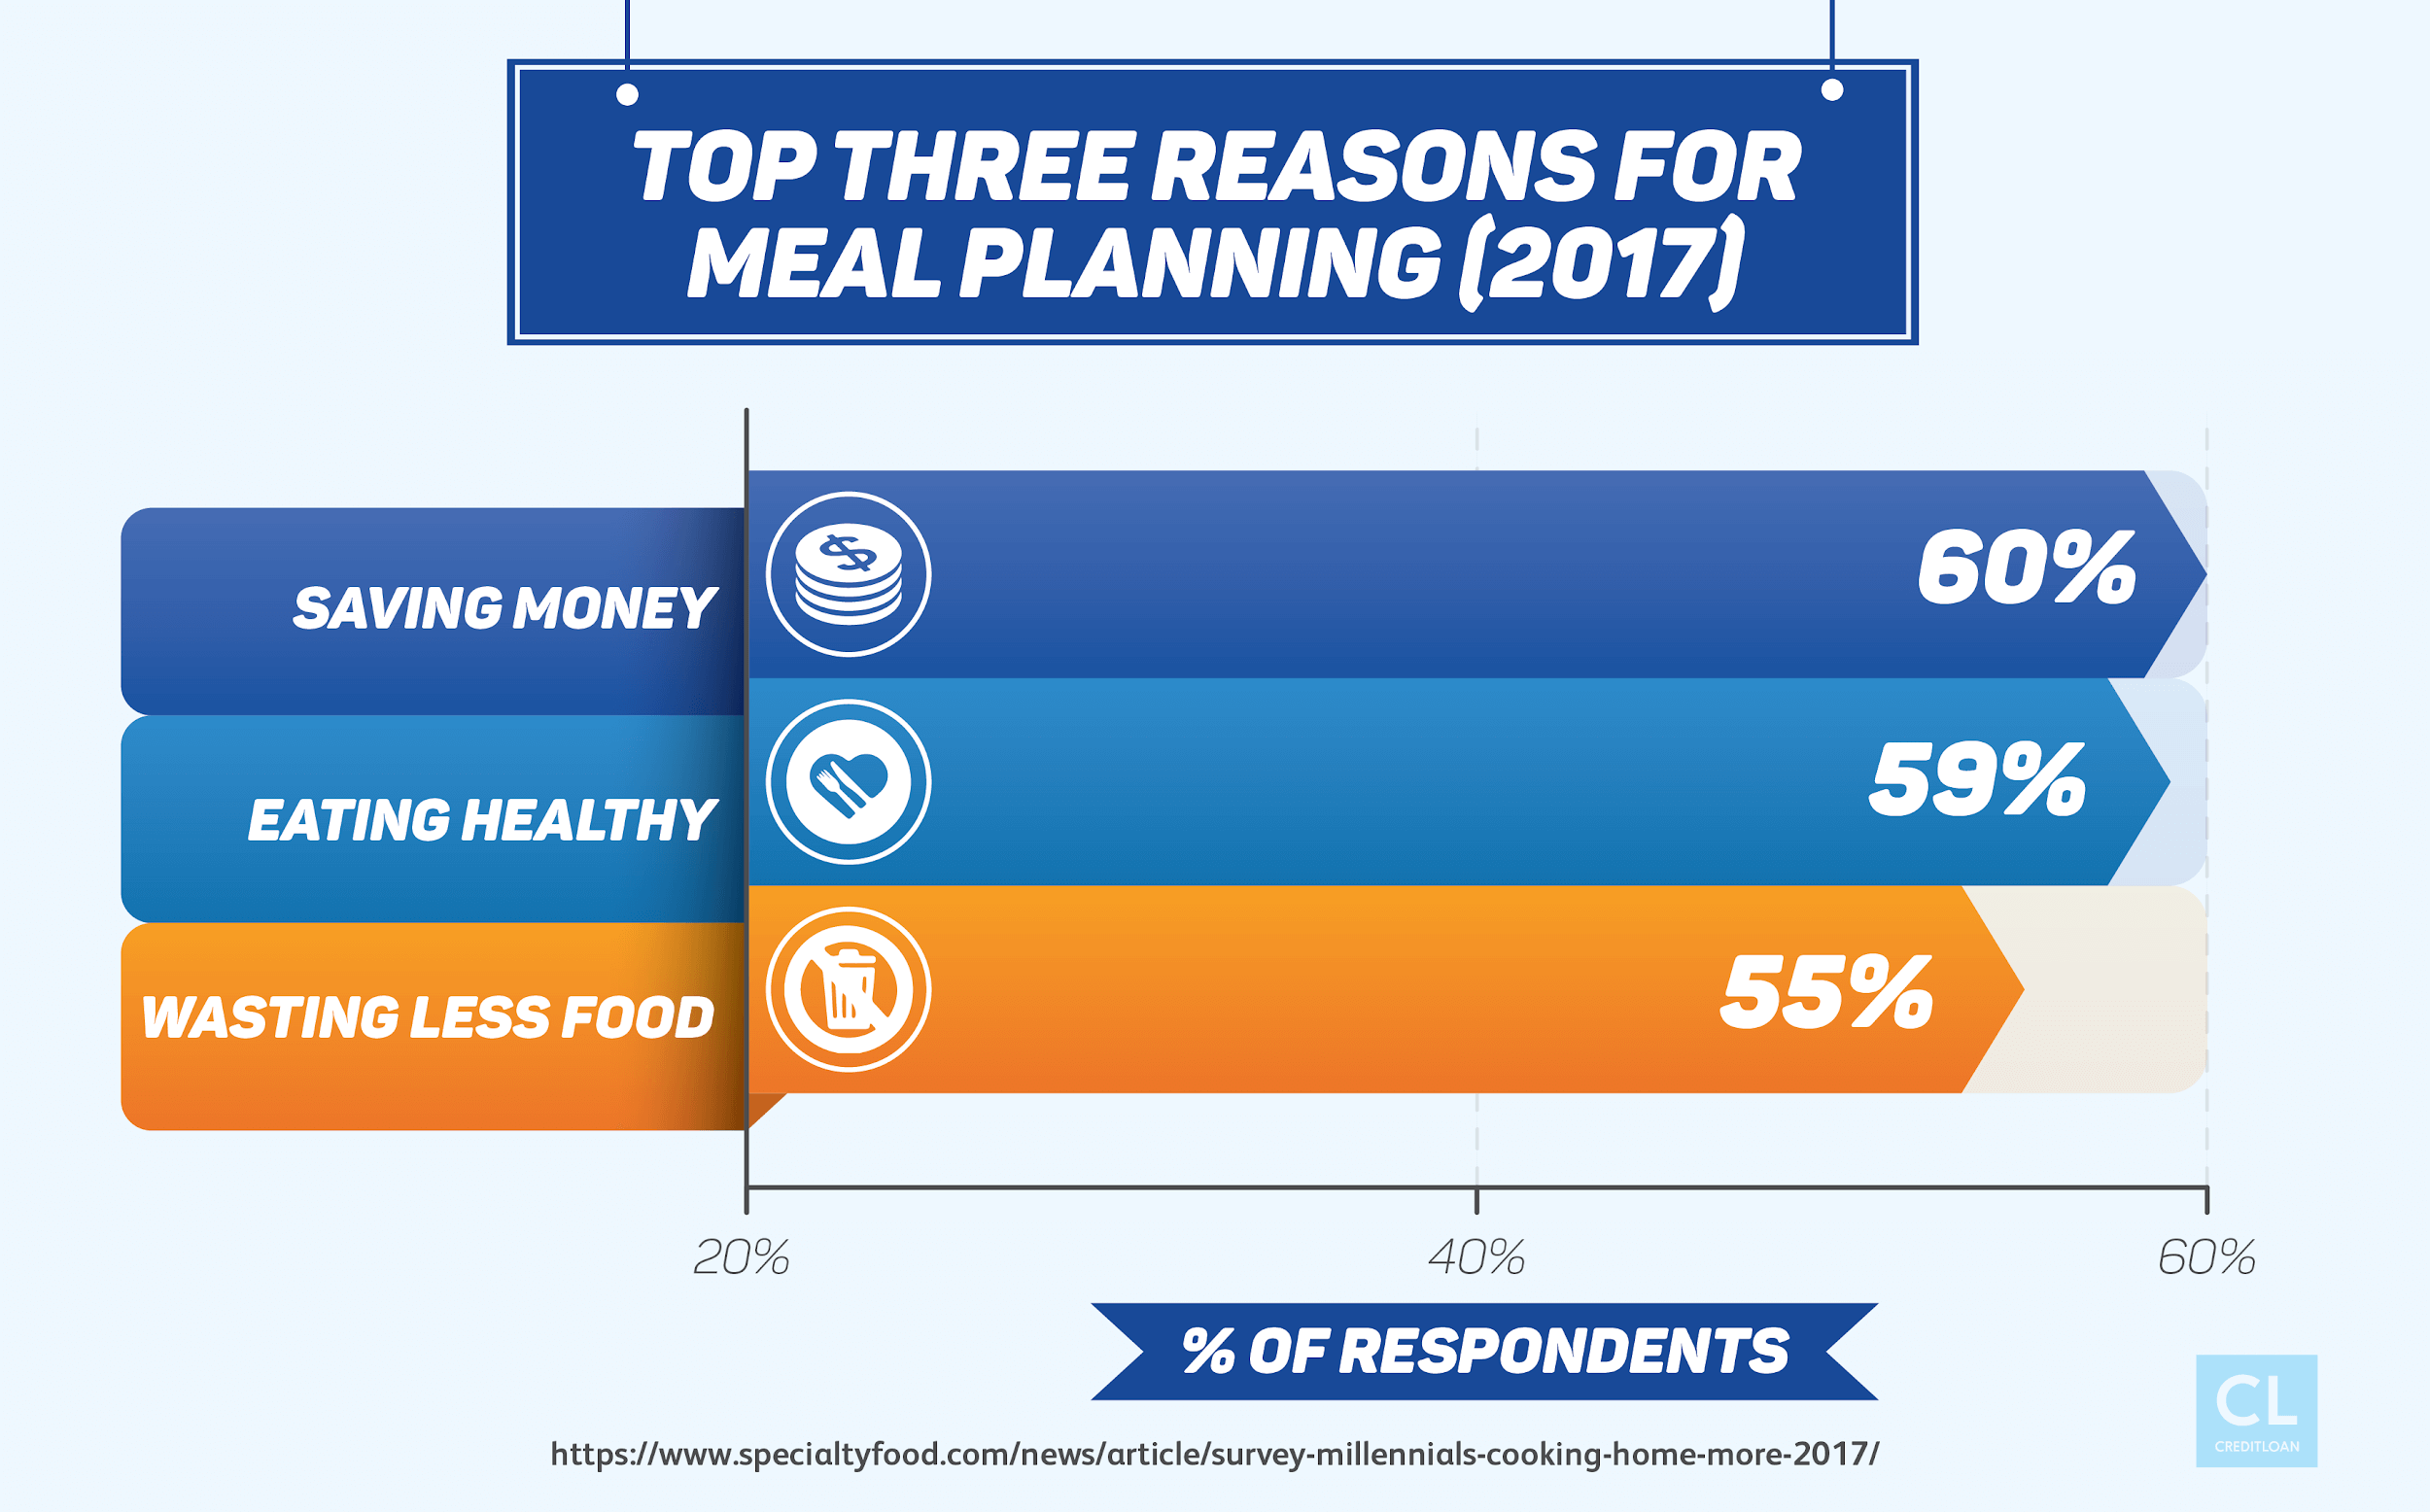 Top Three Reasons For Meal Planning in 2017